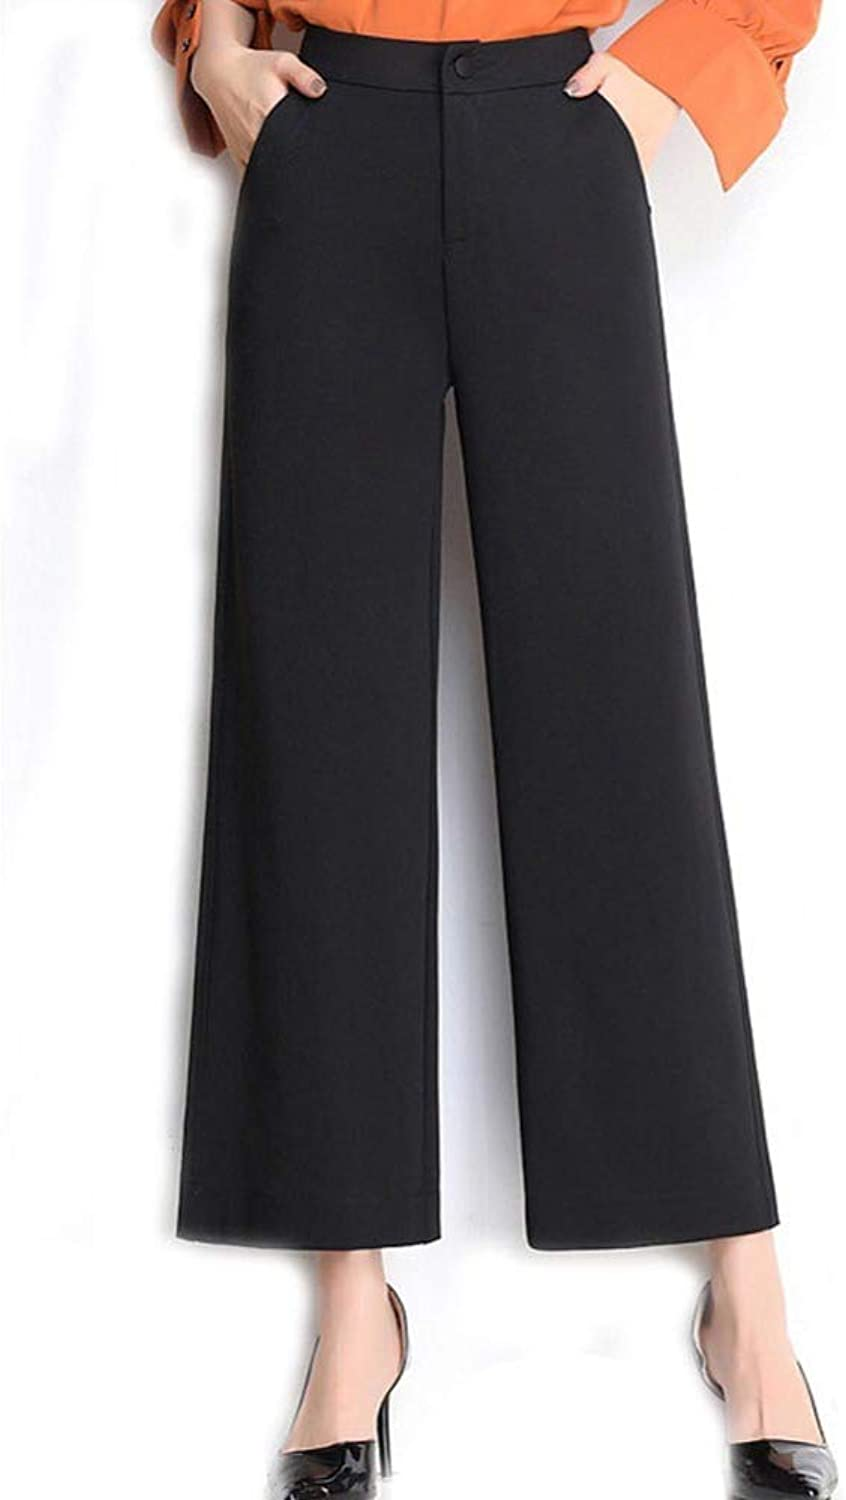 HOQTUM Wide Leg Pants Spring and Summer high Waist Loose Nine Pants Women's Casual Pants Large Size Fashion Pants